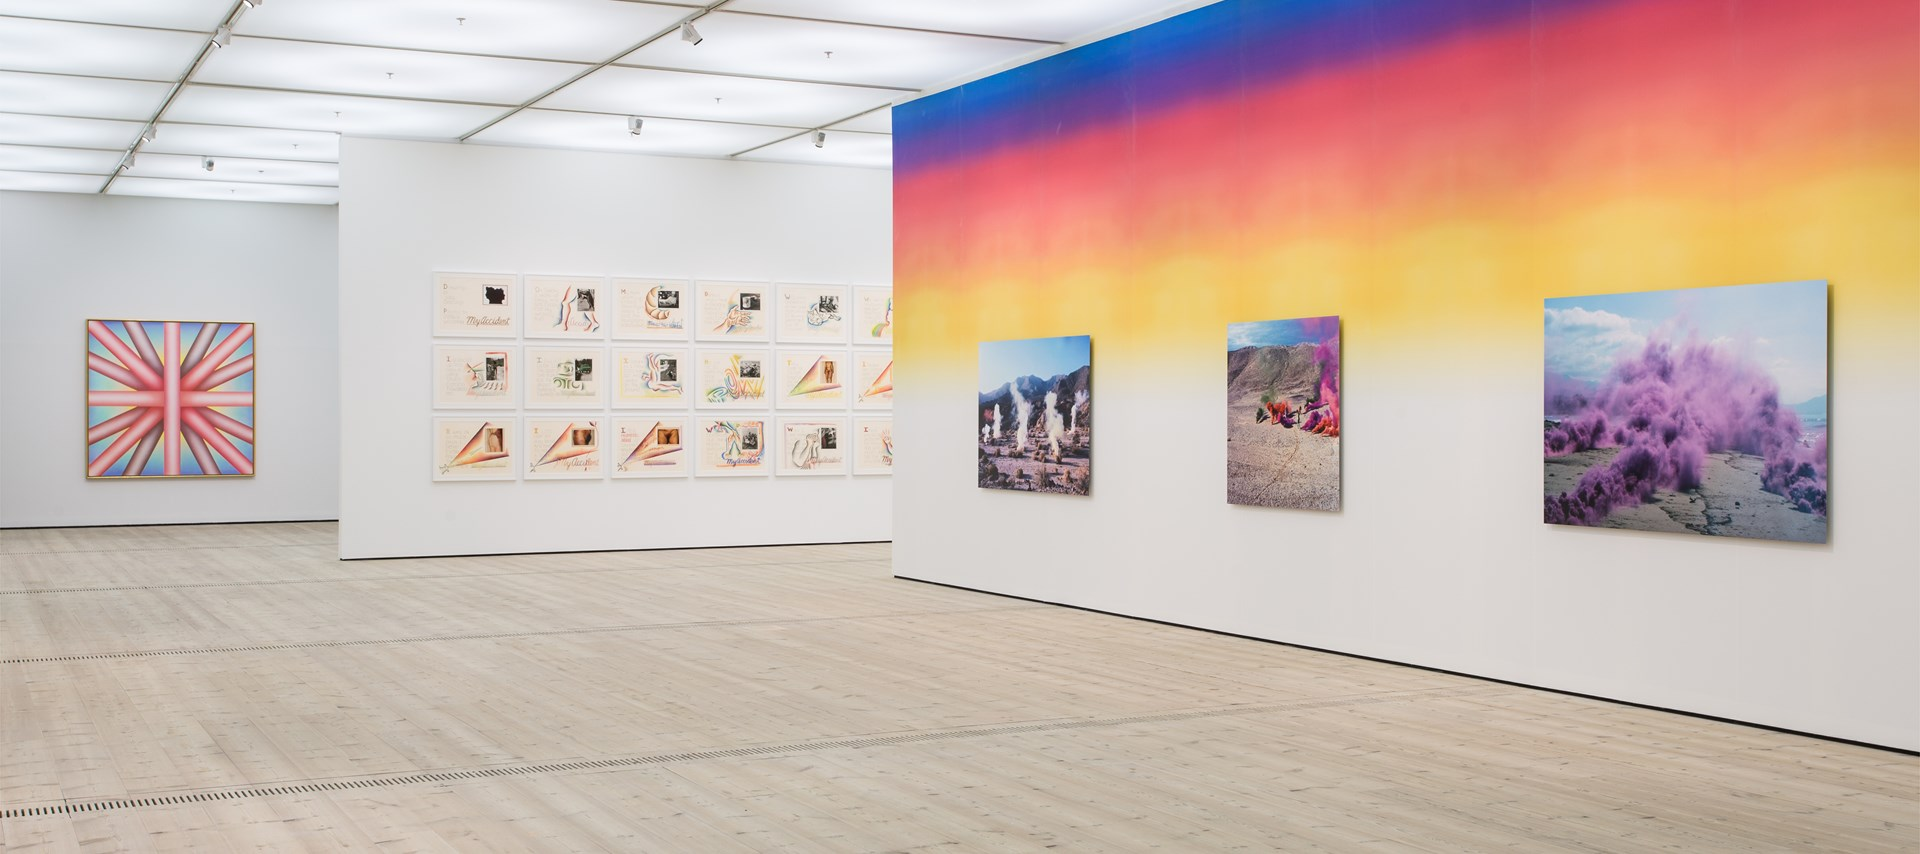 Judy Chicago: Installation View by Rob Harris. © BALTIC 2019